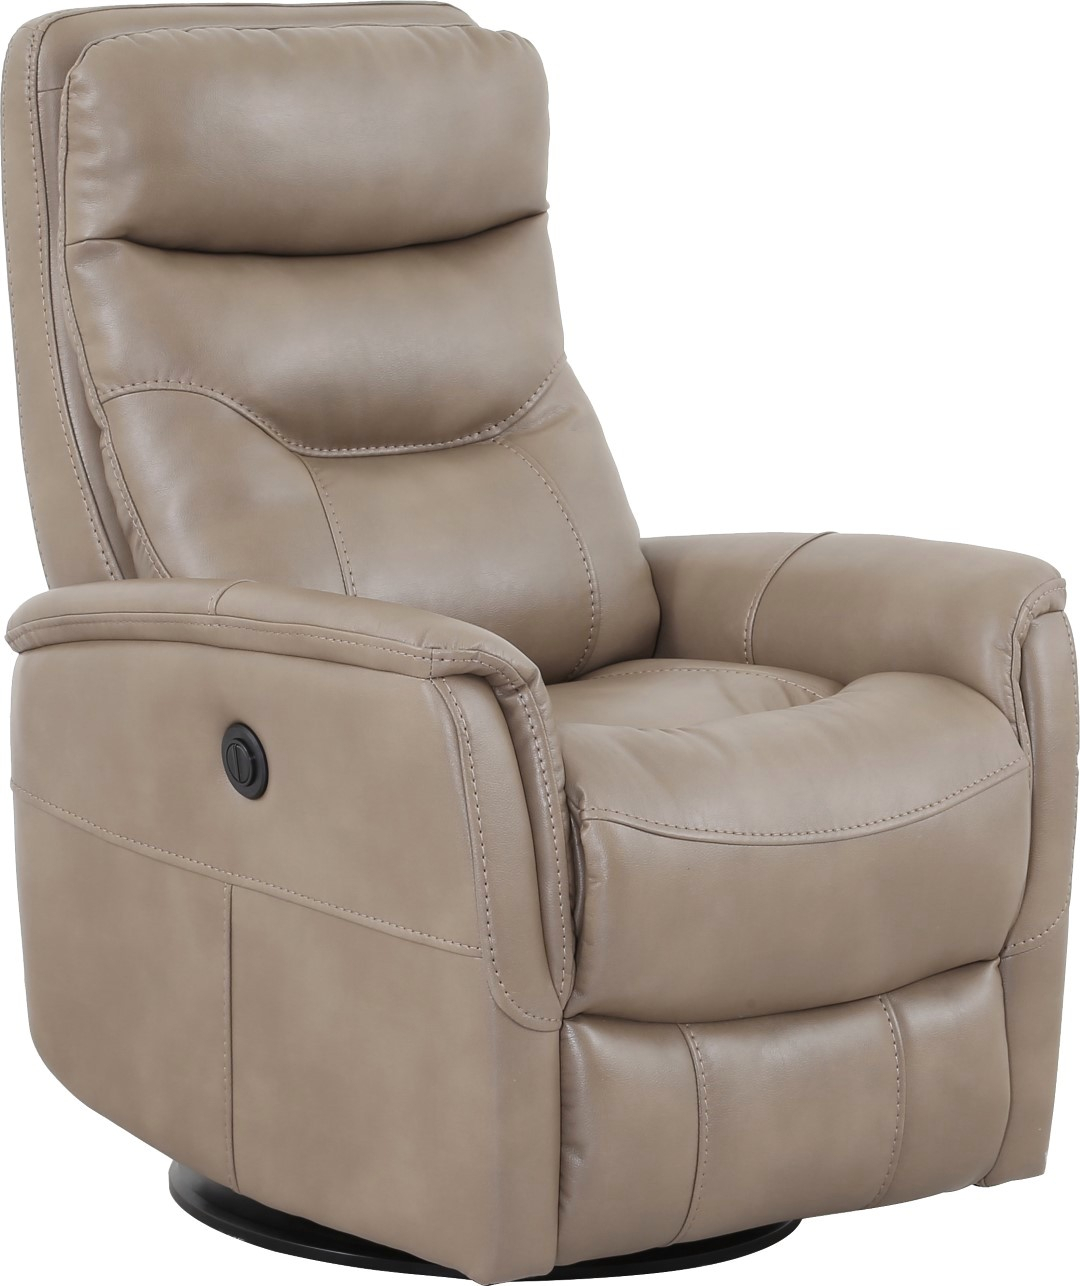 Gemini Linen Swivel Glider Power Recliner With Articulating Headrest Intended For Hercules Oyster Swivel Glider Recliners (Image 5 of 20)